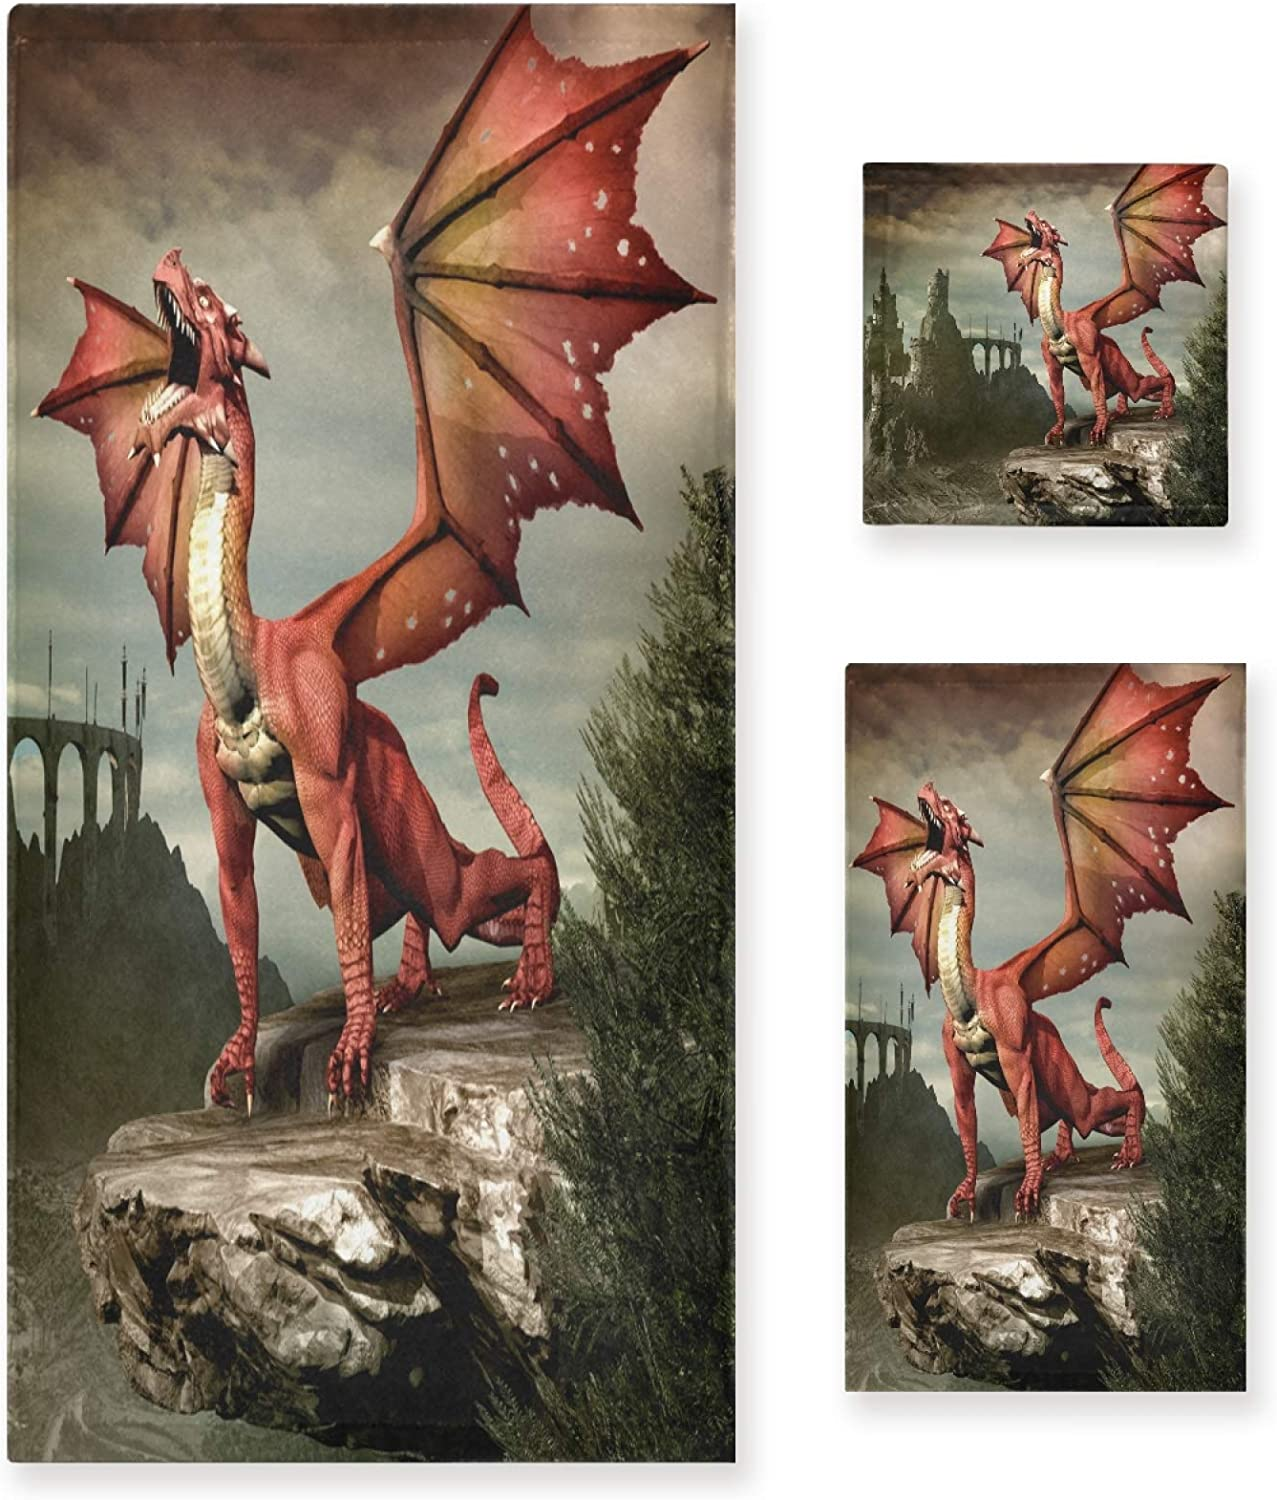 3-Piece NEW before selling ☆ Towel Set Red Dragon Surprise price H Sets Bath 1